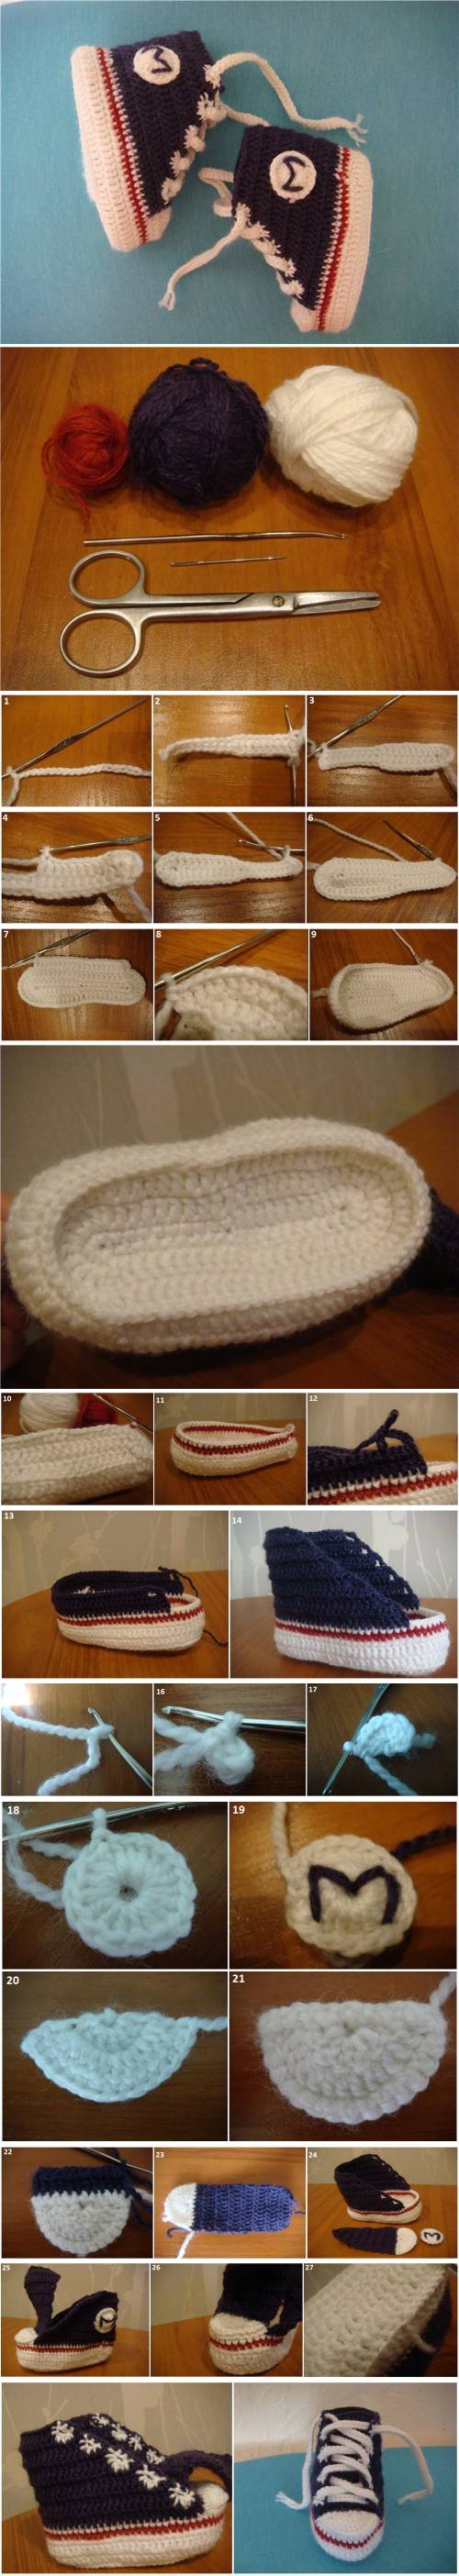 How To Crochet Tennis Booties step by step DIY tutorial instructions